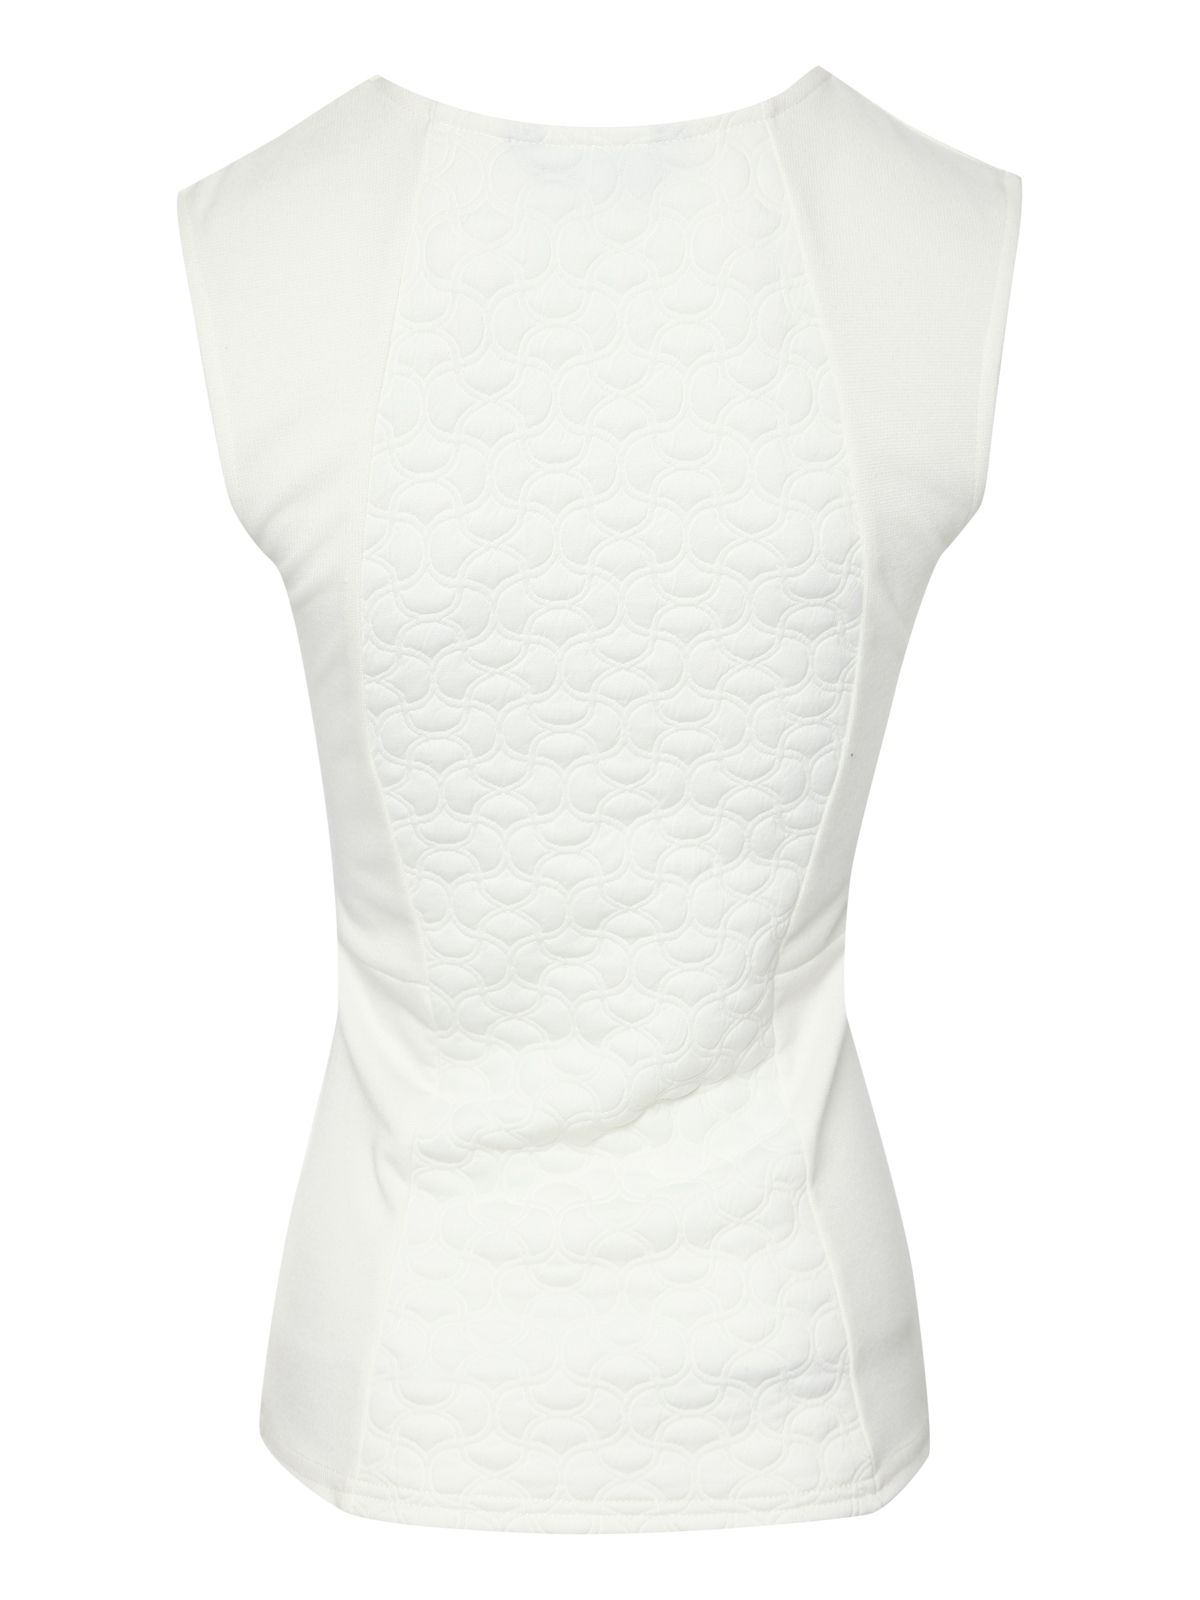 Sleeveless textured illusion panel top